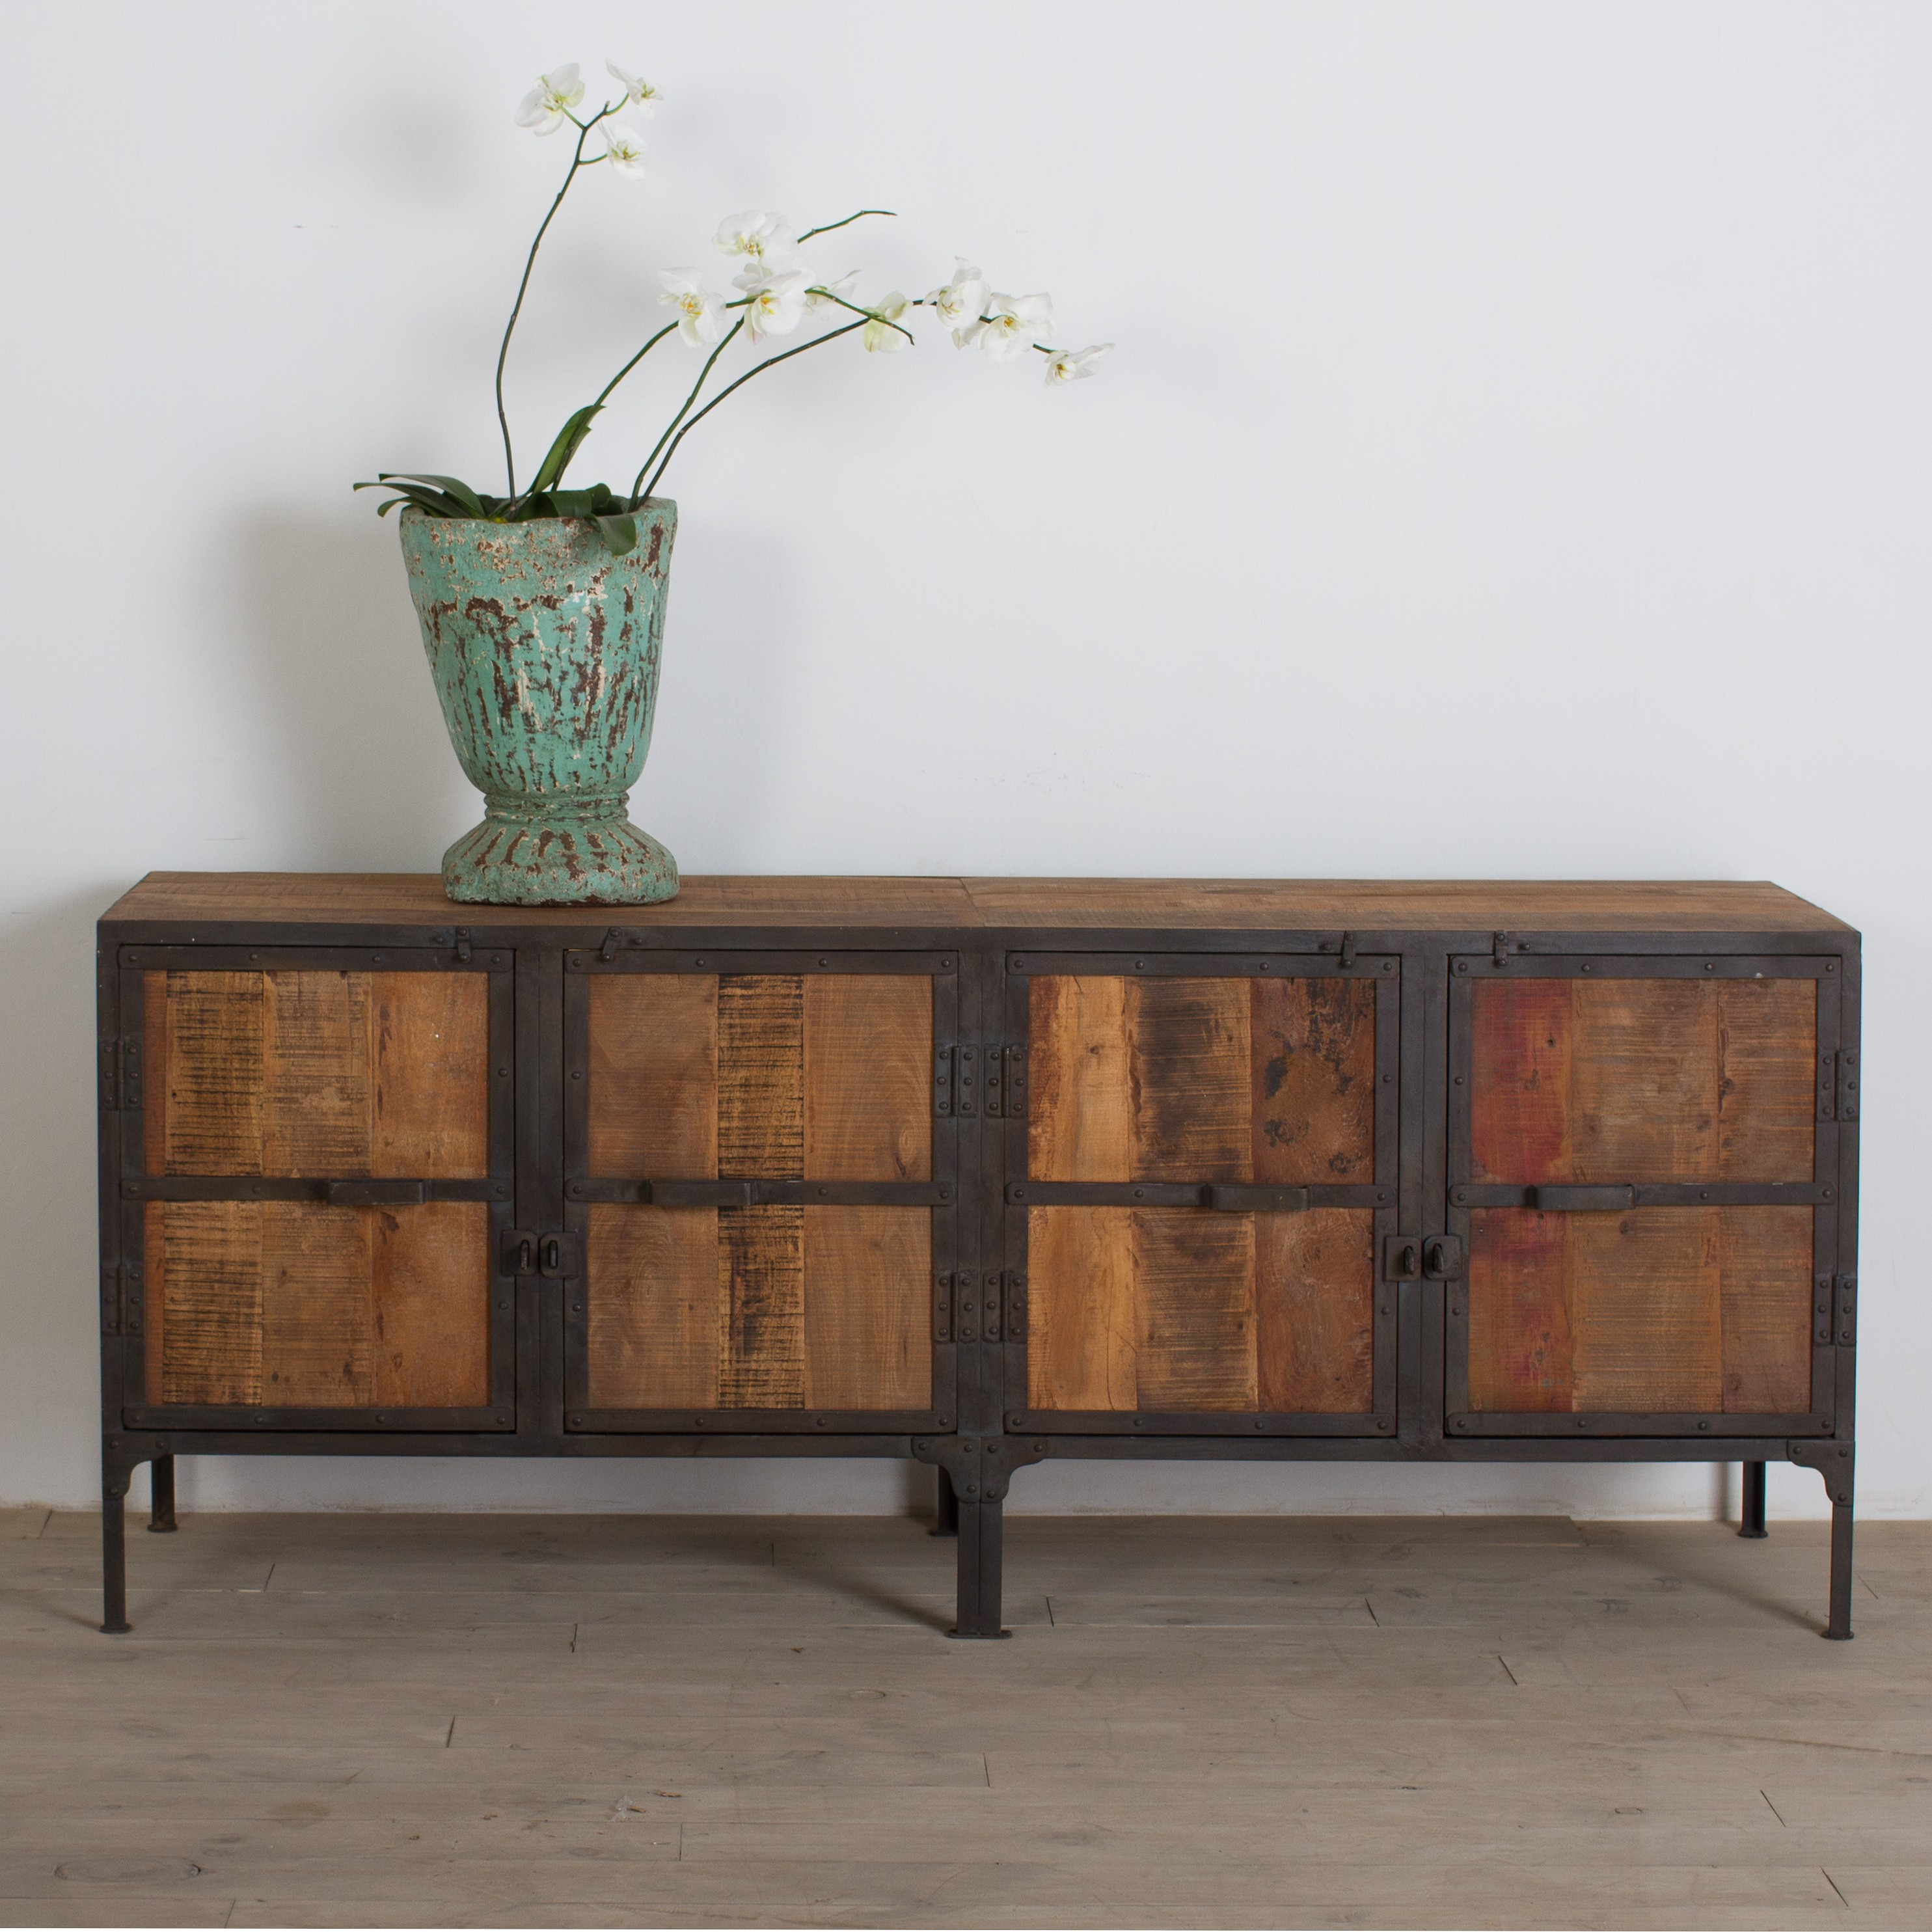 Hyderabad Reclaimed Wood and Metal Buffet from CG Sparks